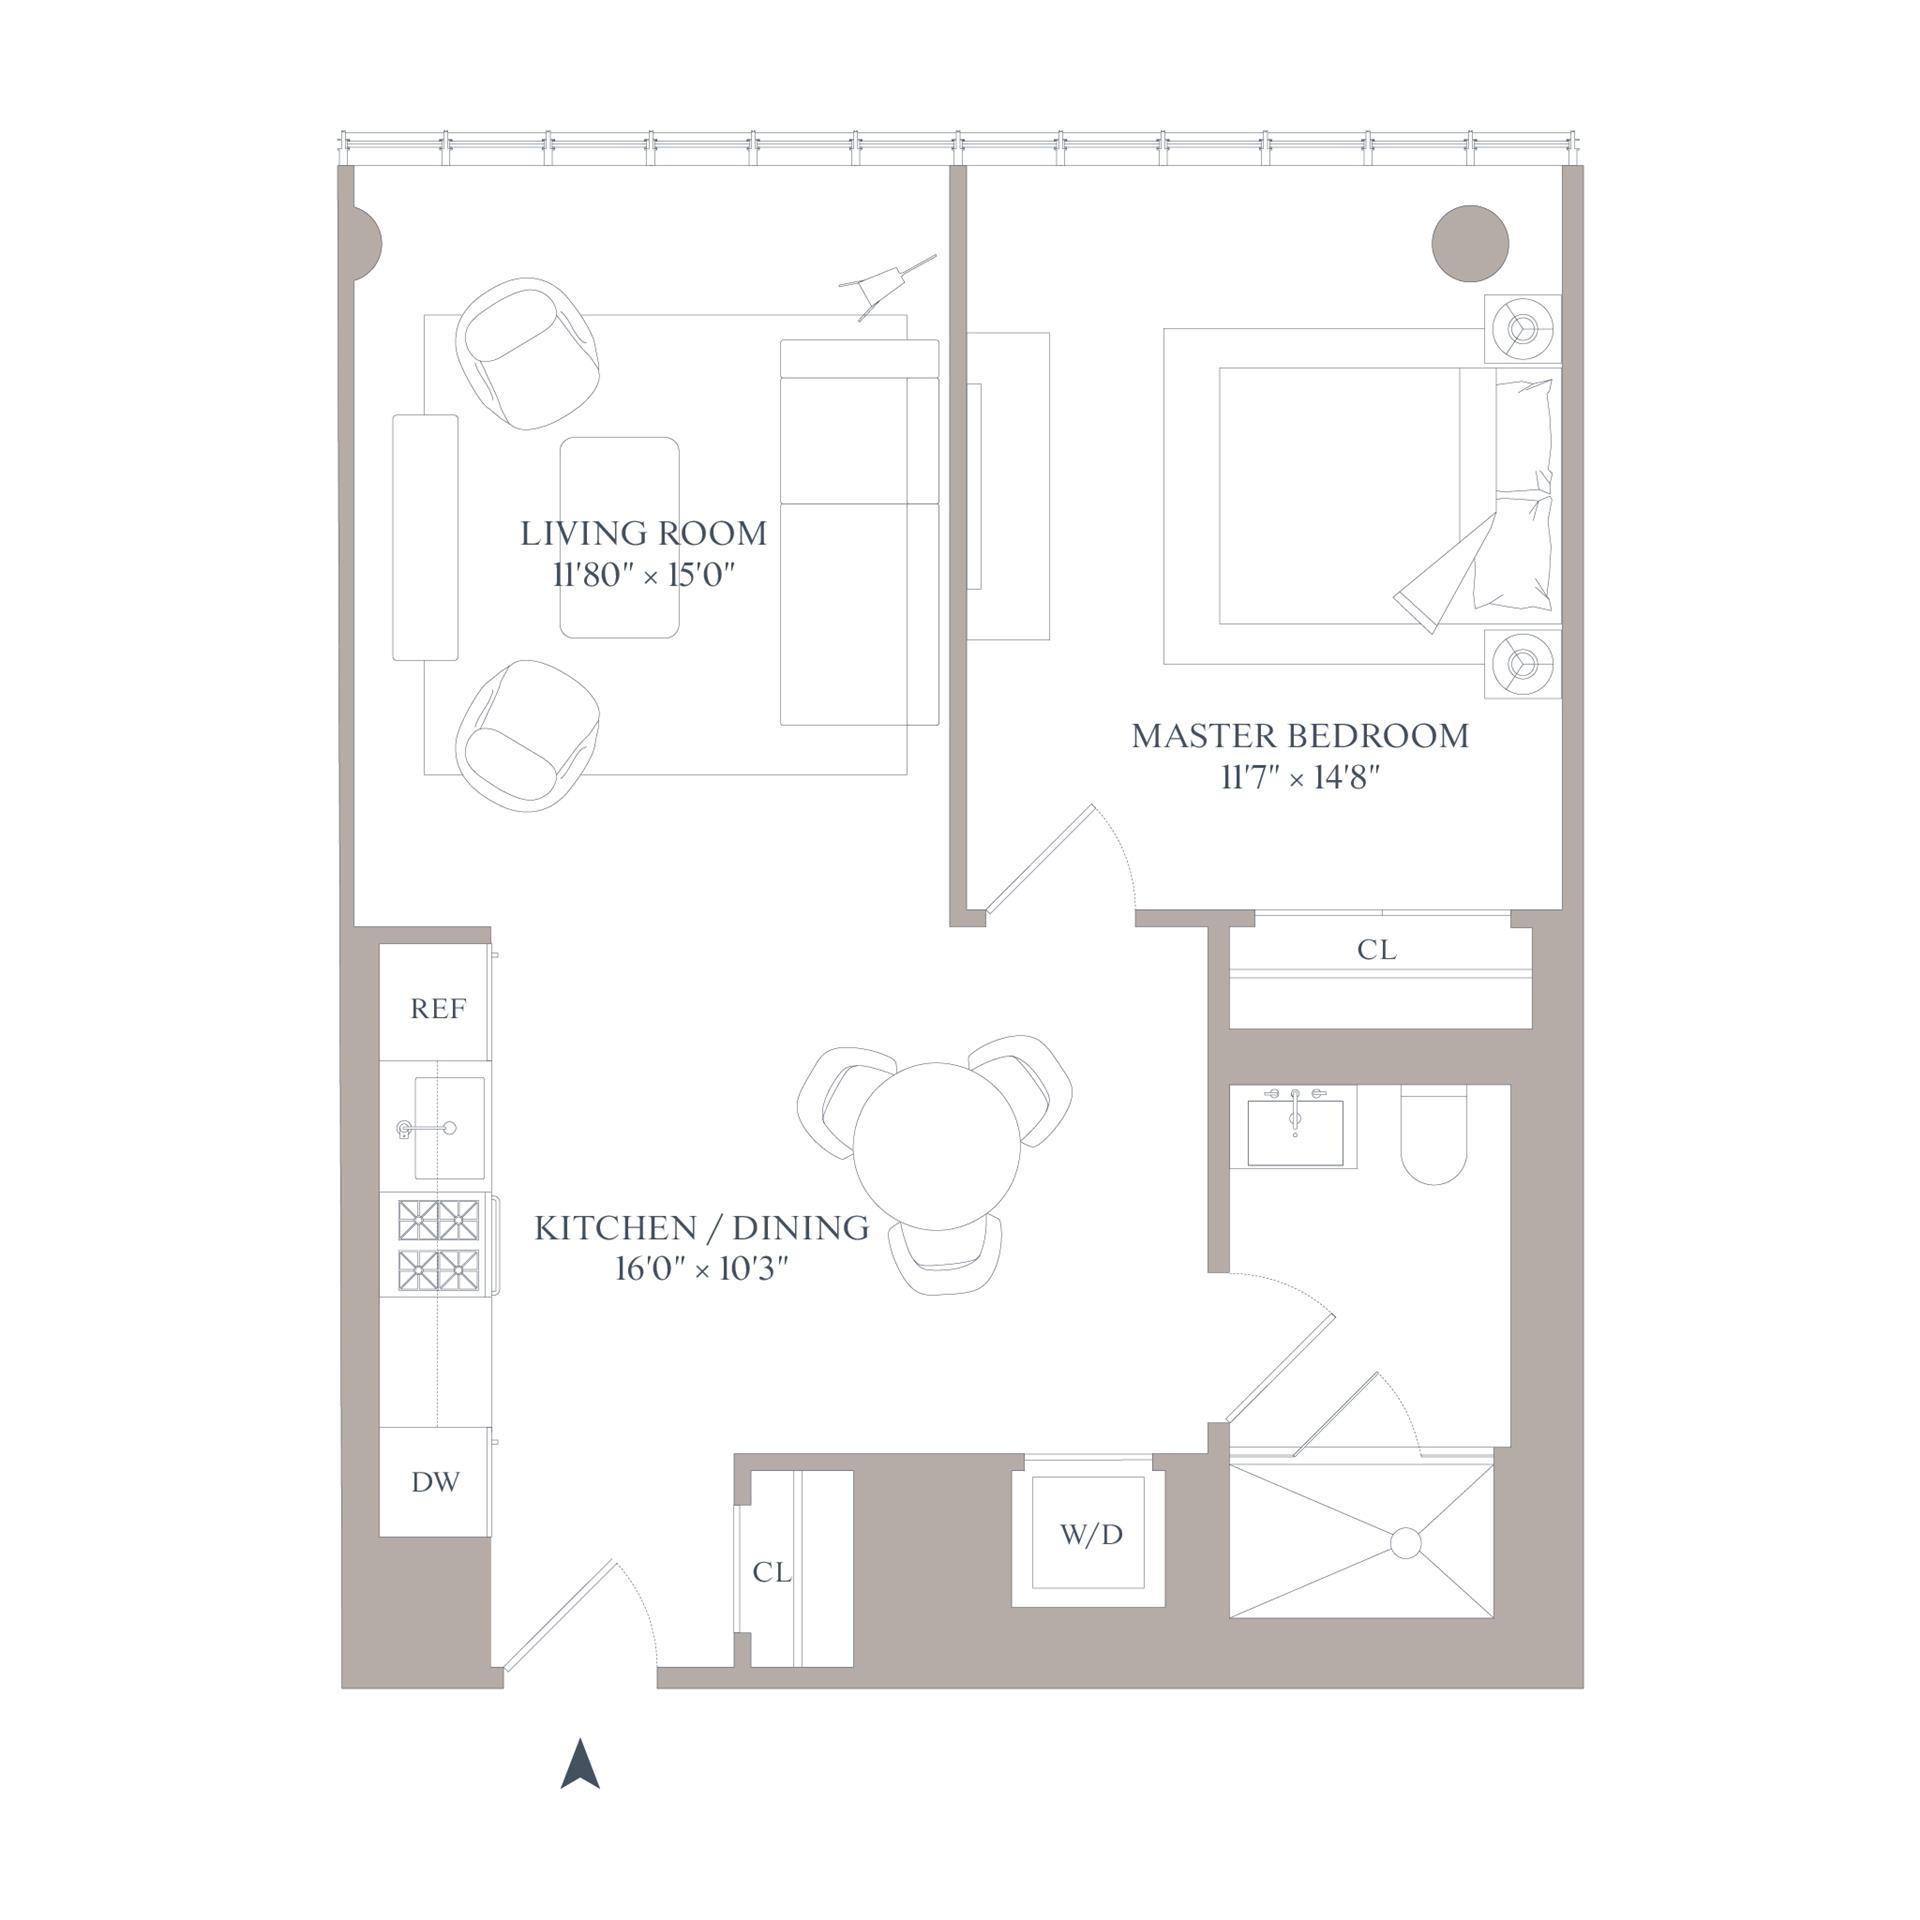 Floor plan of 565 Broome Street, N5E - SoHo - Nolita, New York